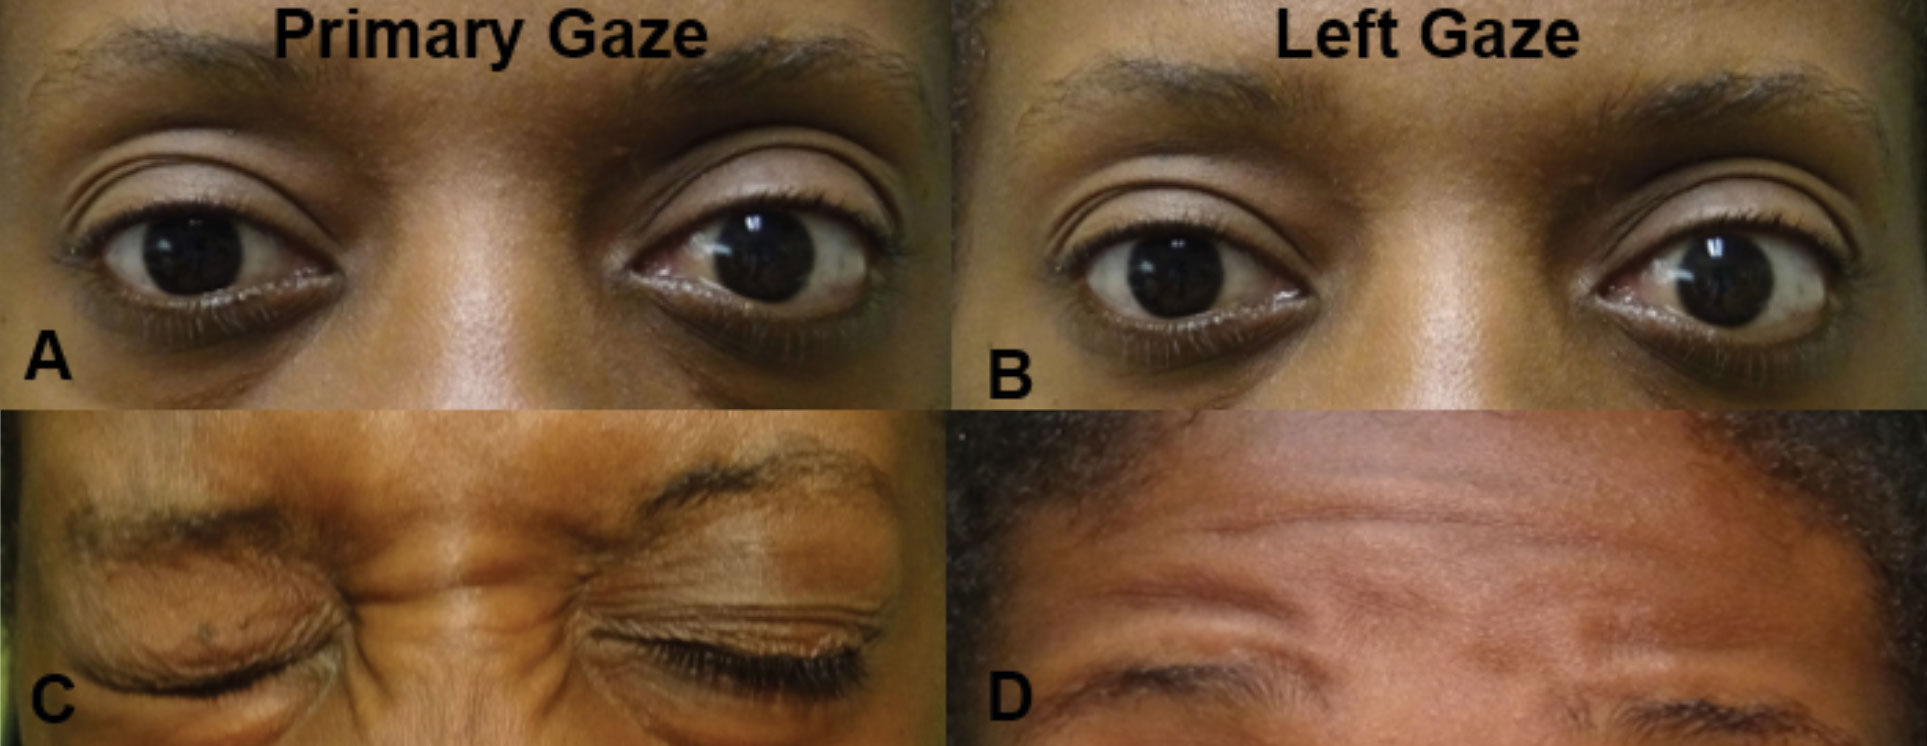 In primary gaze (A), there is a noted difference in palpebral apertures due to the left lower lid lagophthalmos. In left gaze (B), there is no movement of either eye consistent with a left gaze palsy (likely at the left CN VI nucleus). There was associated left orbicularis oculi weakness (C) and left frontalis weakness (D), both consistent with a partial left CN VII lesion. The combination of these findings localizes the lesion to the left pons involving both the CN VI nucleus and CN VII fasiculus.